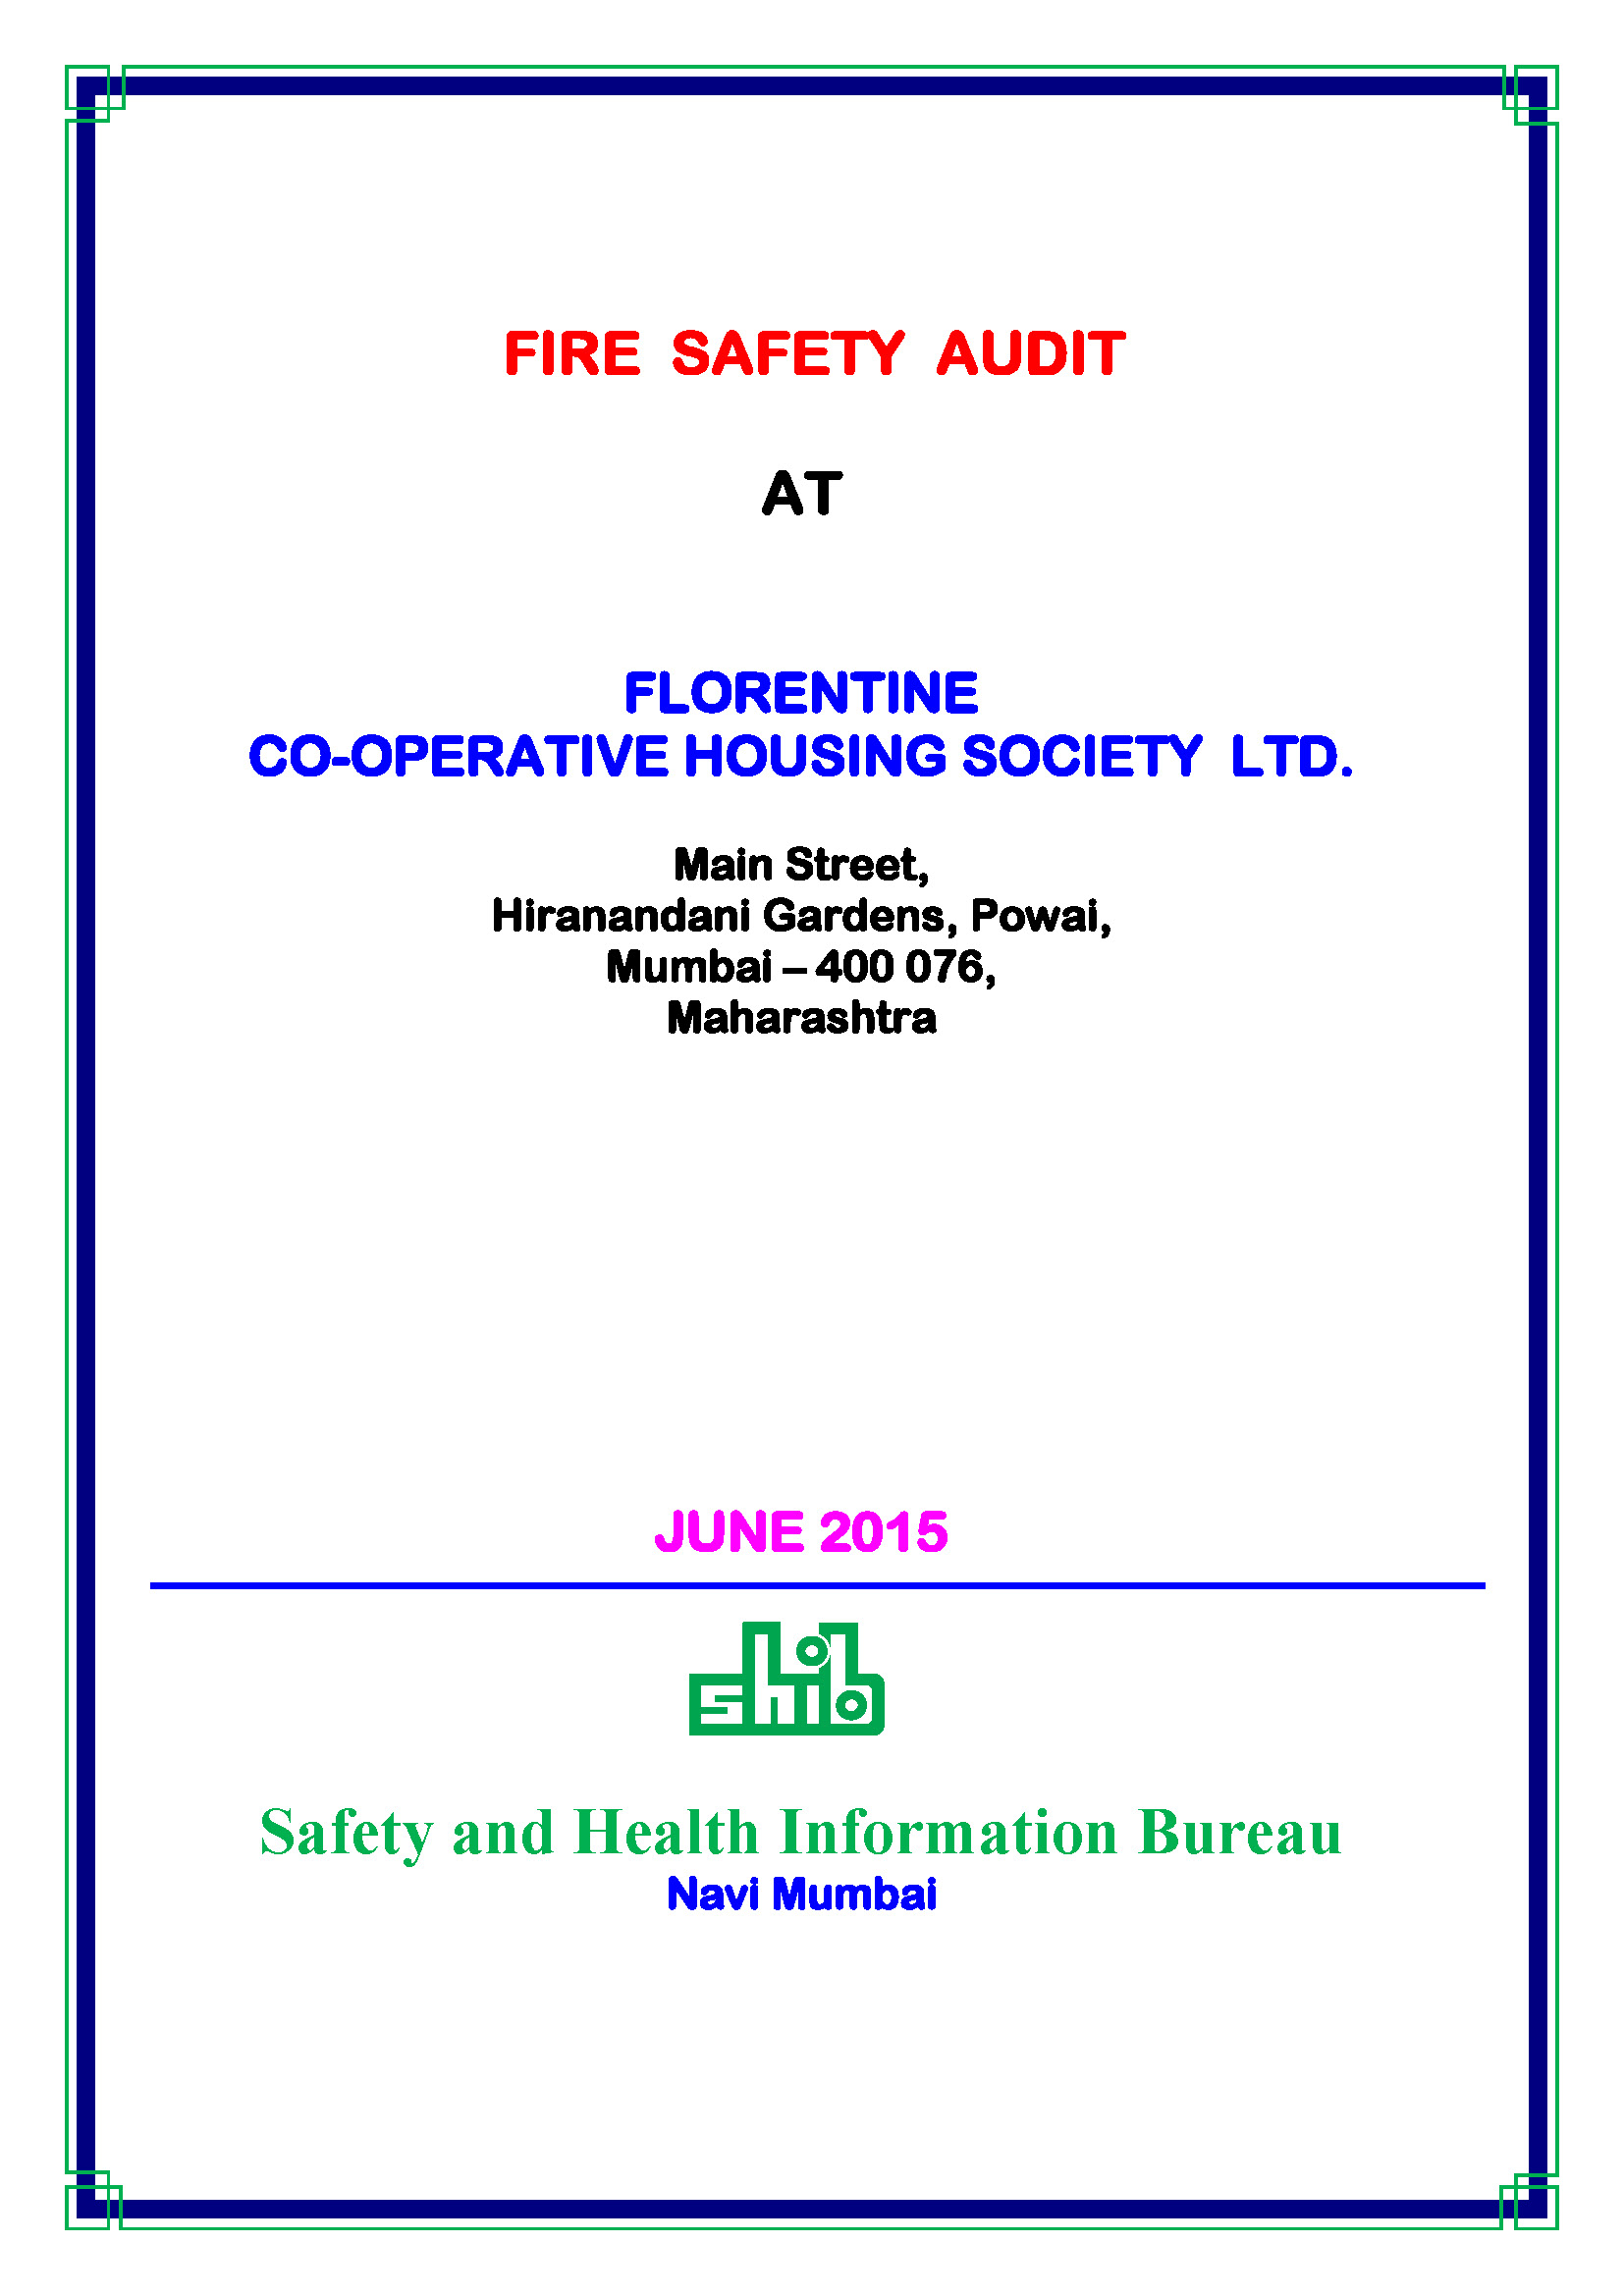 audit report cover page audit report cover page home website of of the cover page of the report entitled fire safety audit